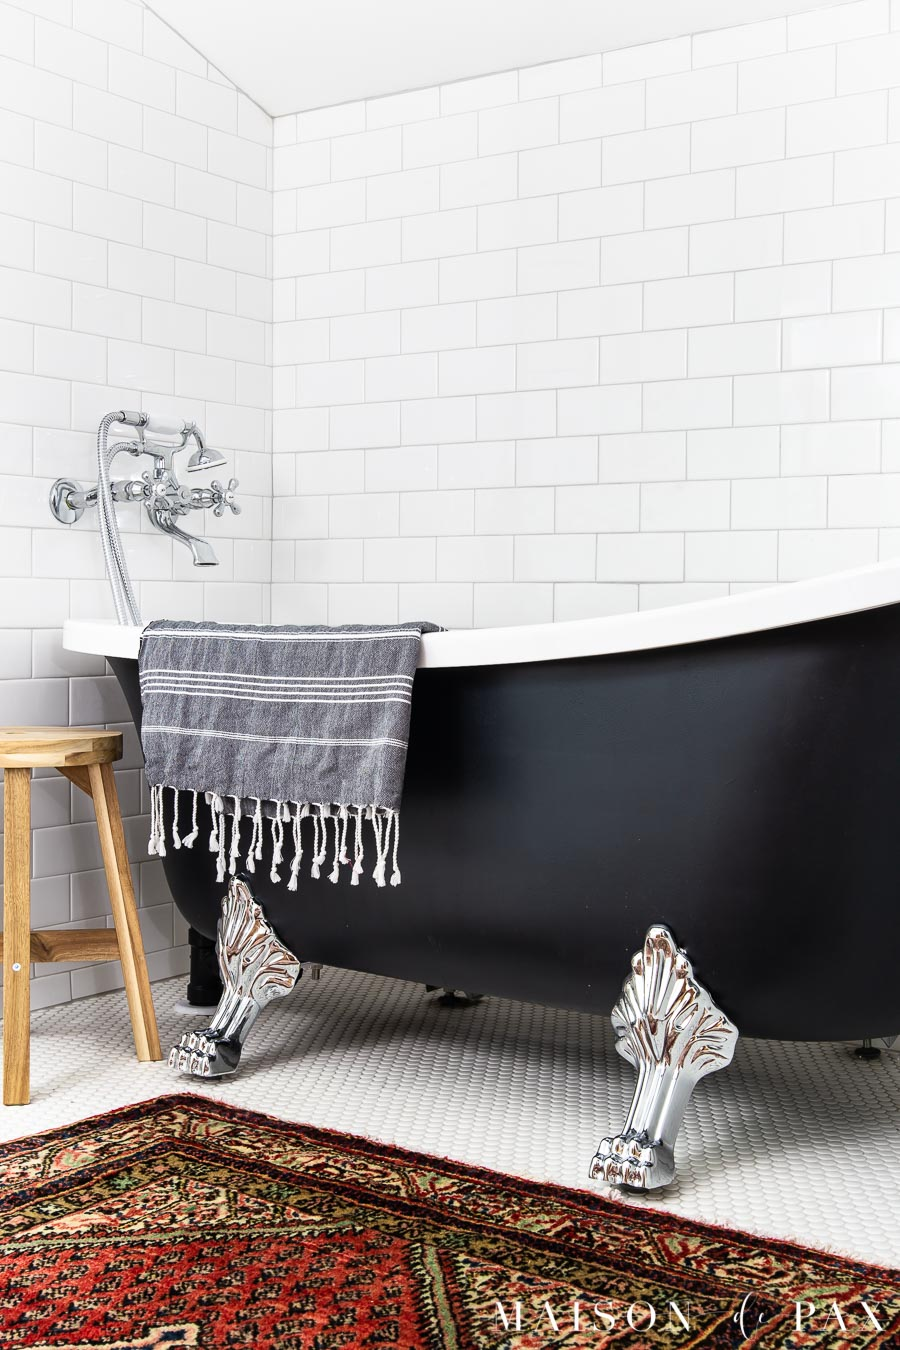 black clawfoot tub with chrome feet in white tile bathroom | Maison de Pax